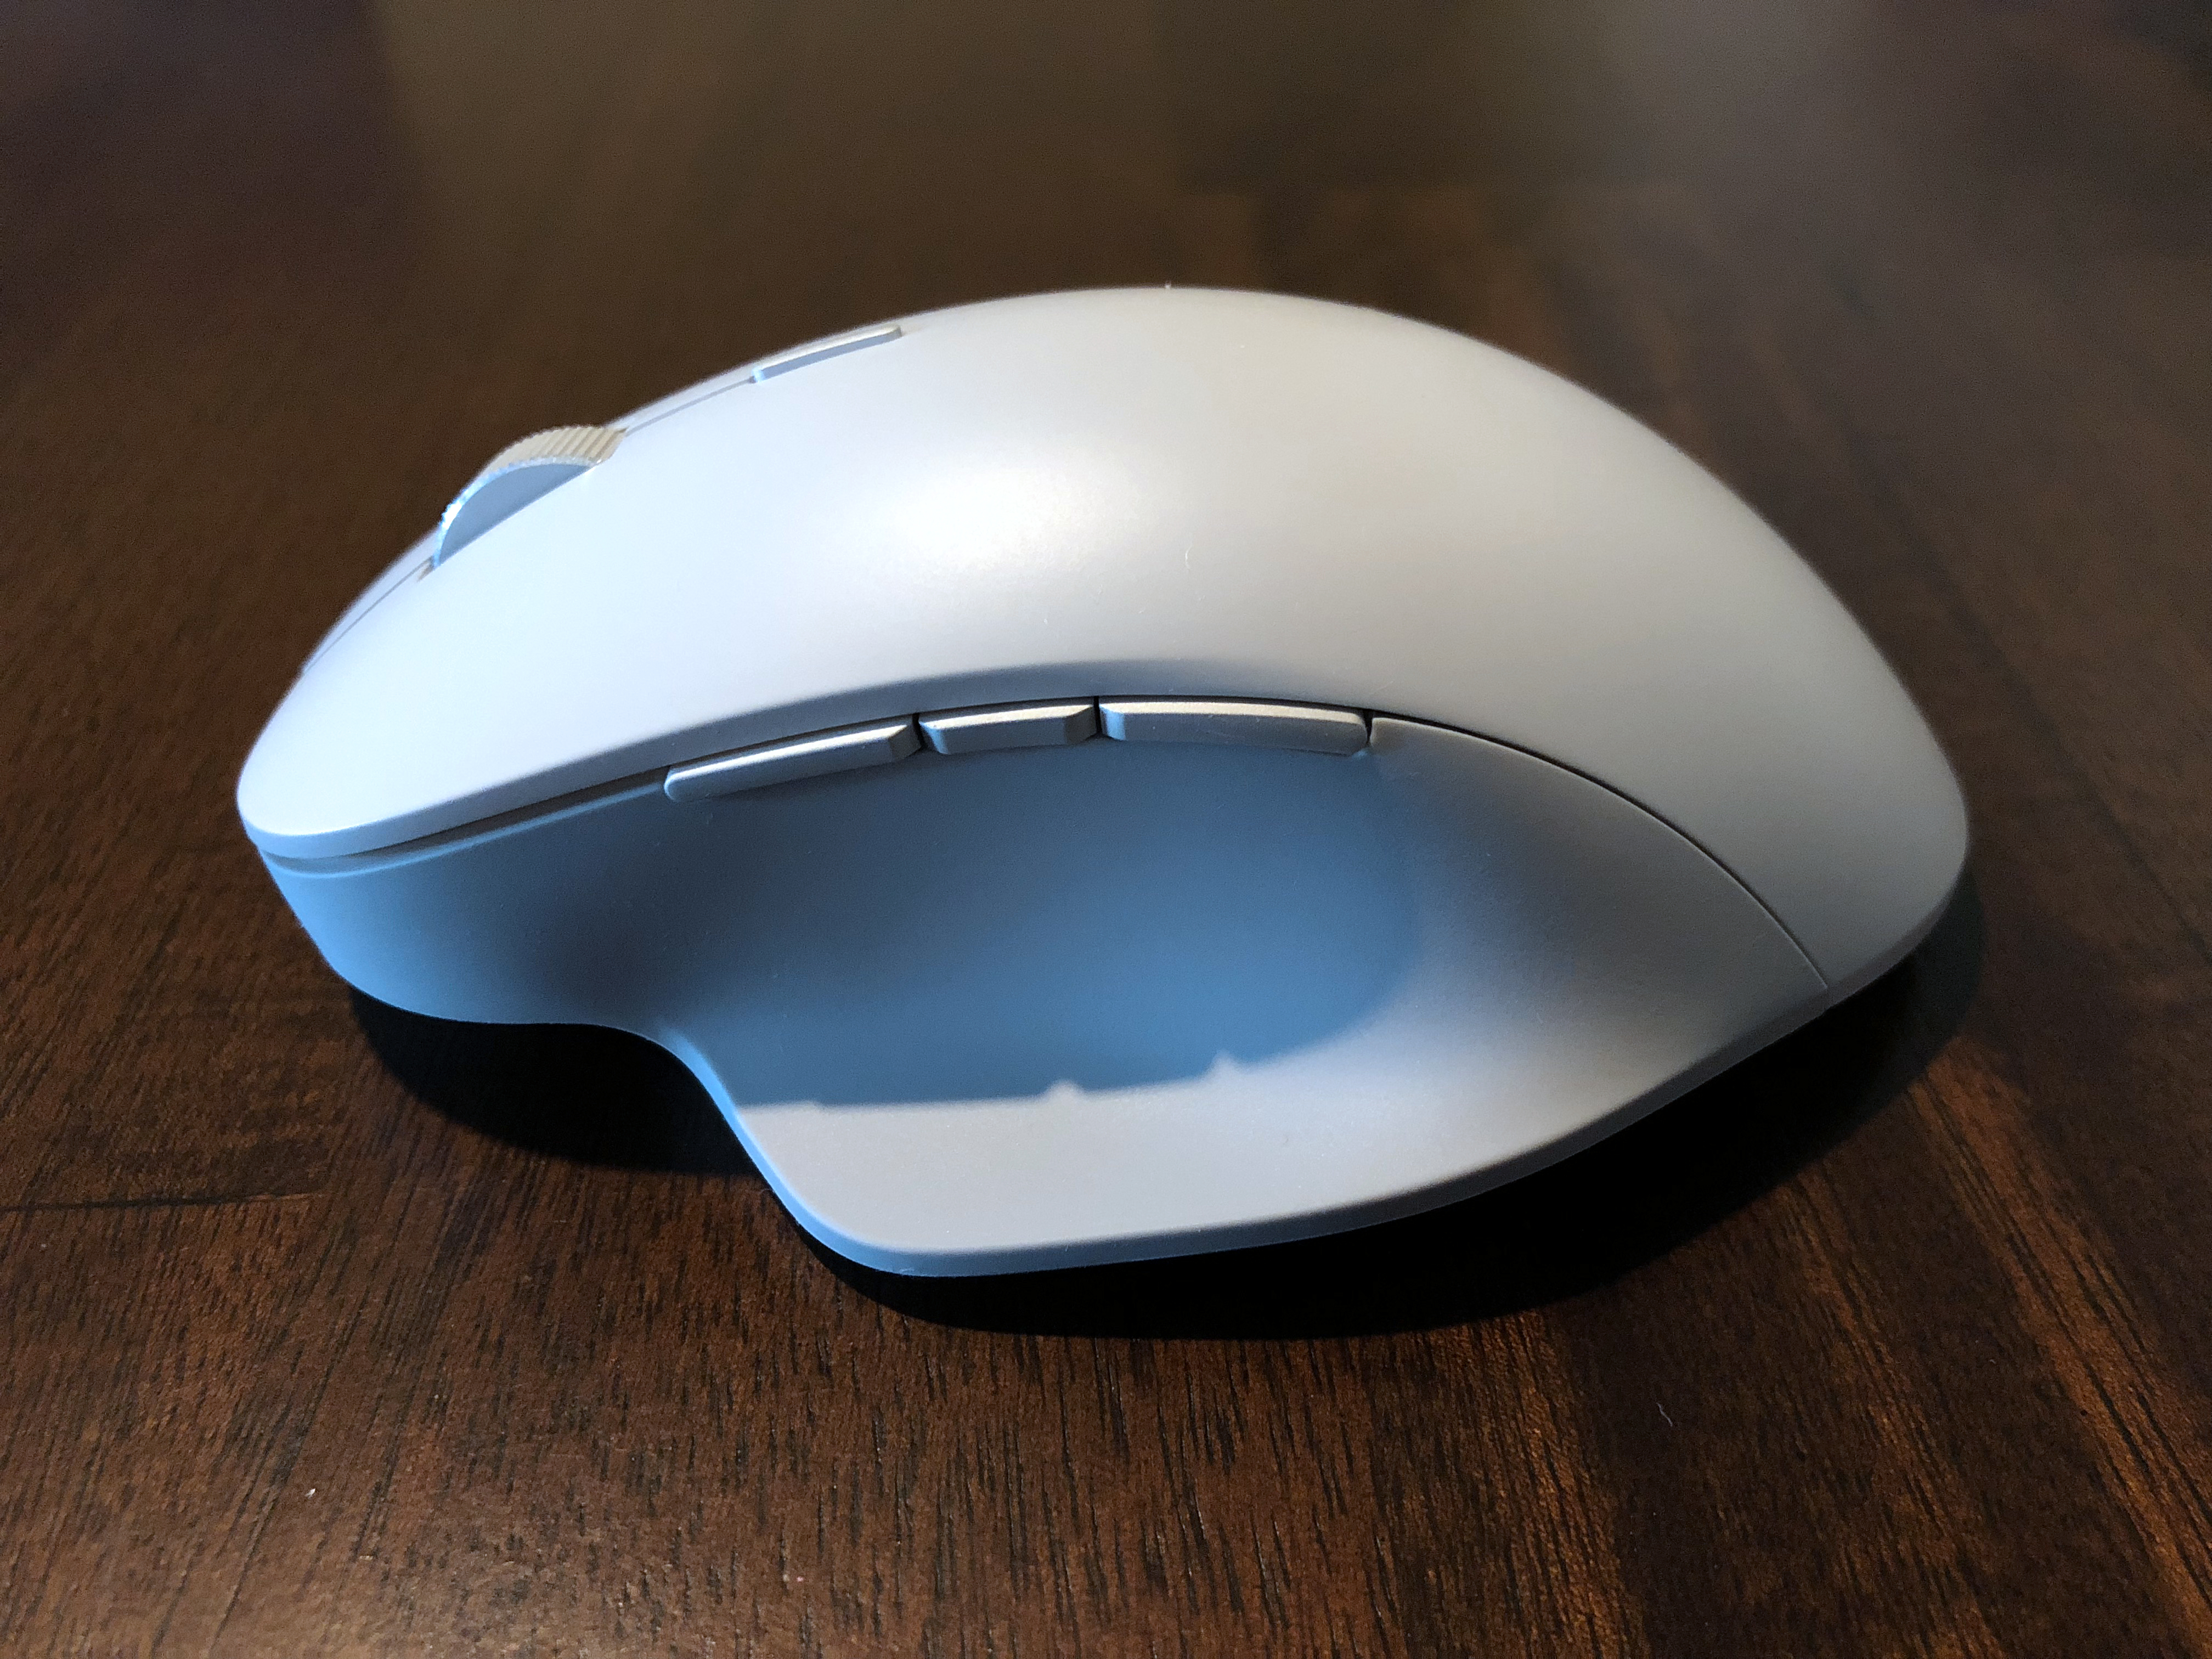 Review: Microsoft Surface Precision Mouse - Thinking Different about